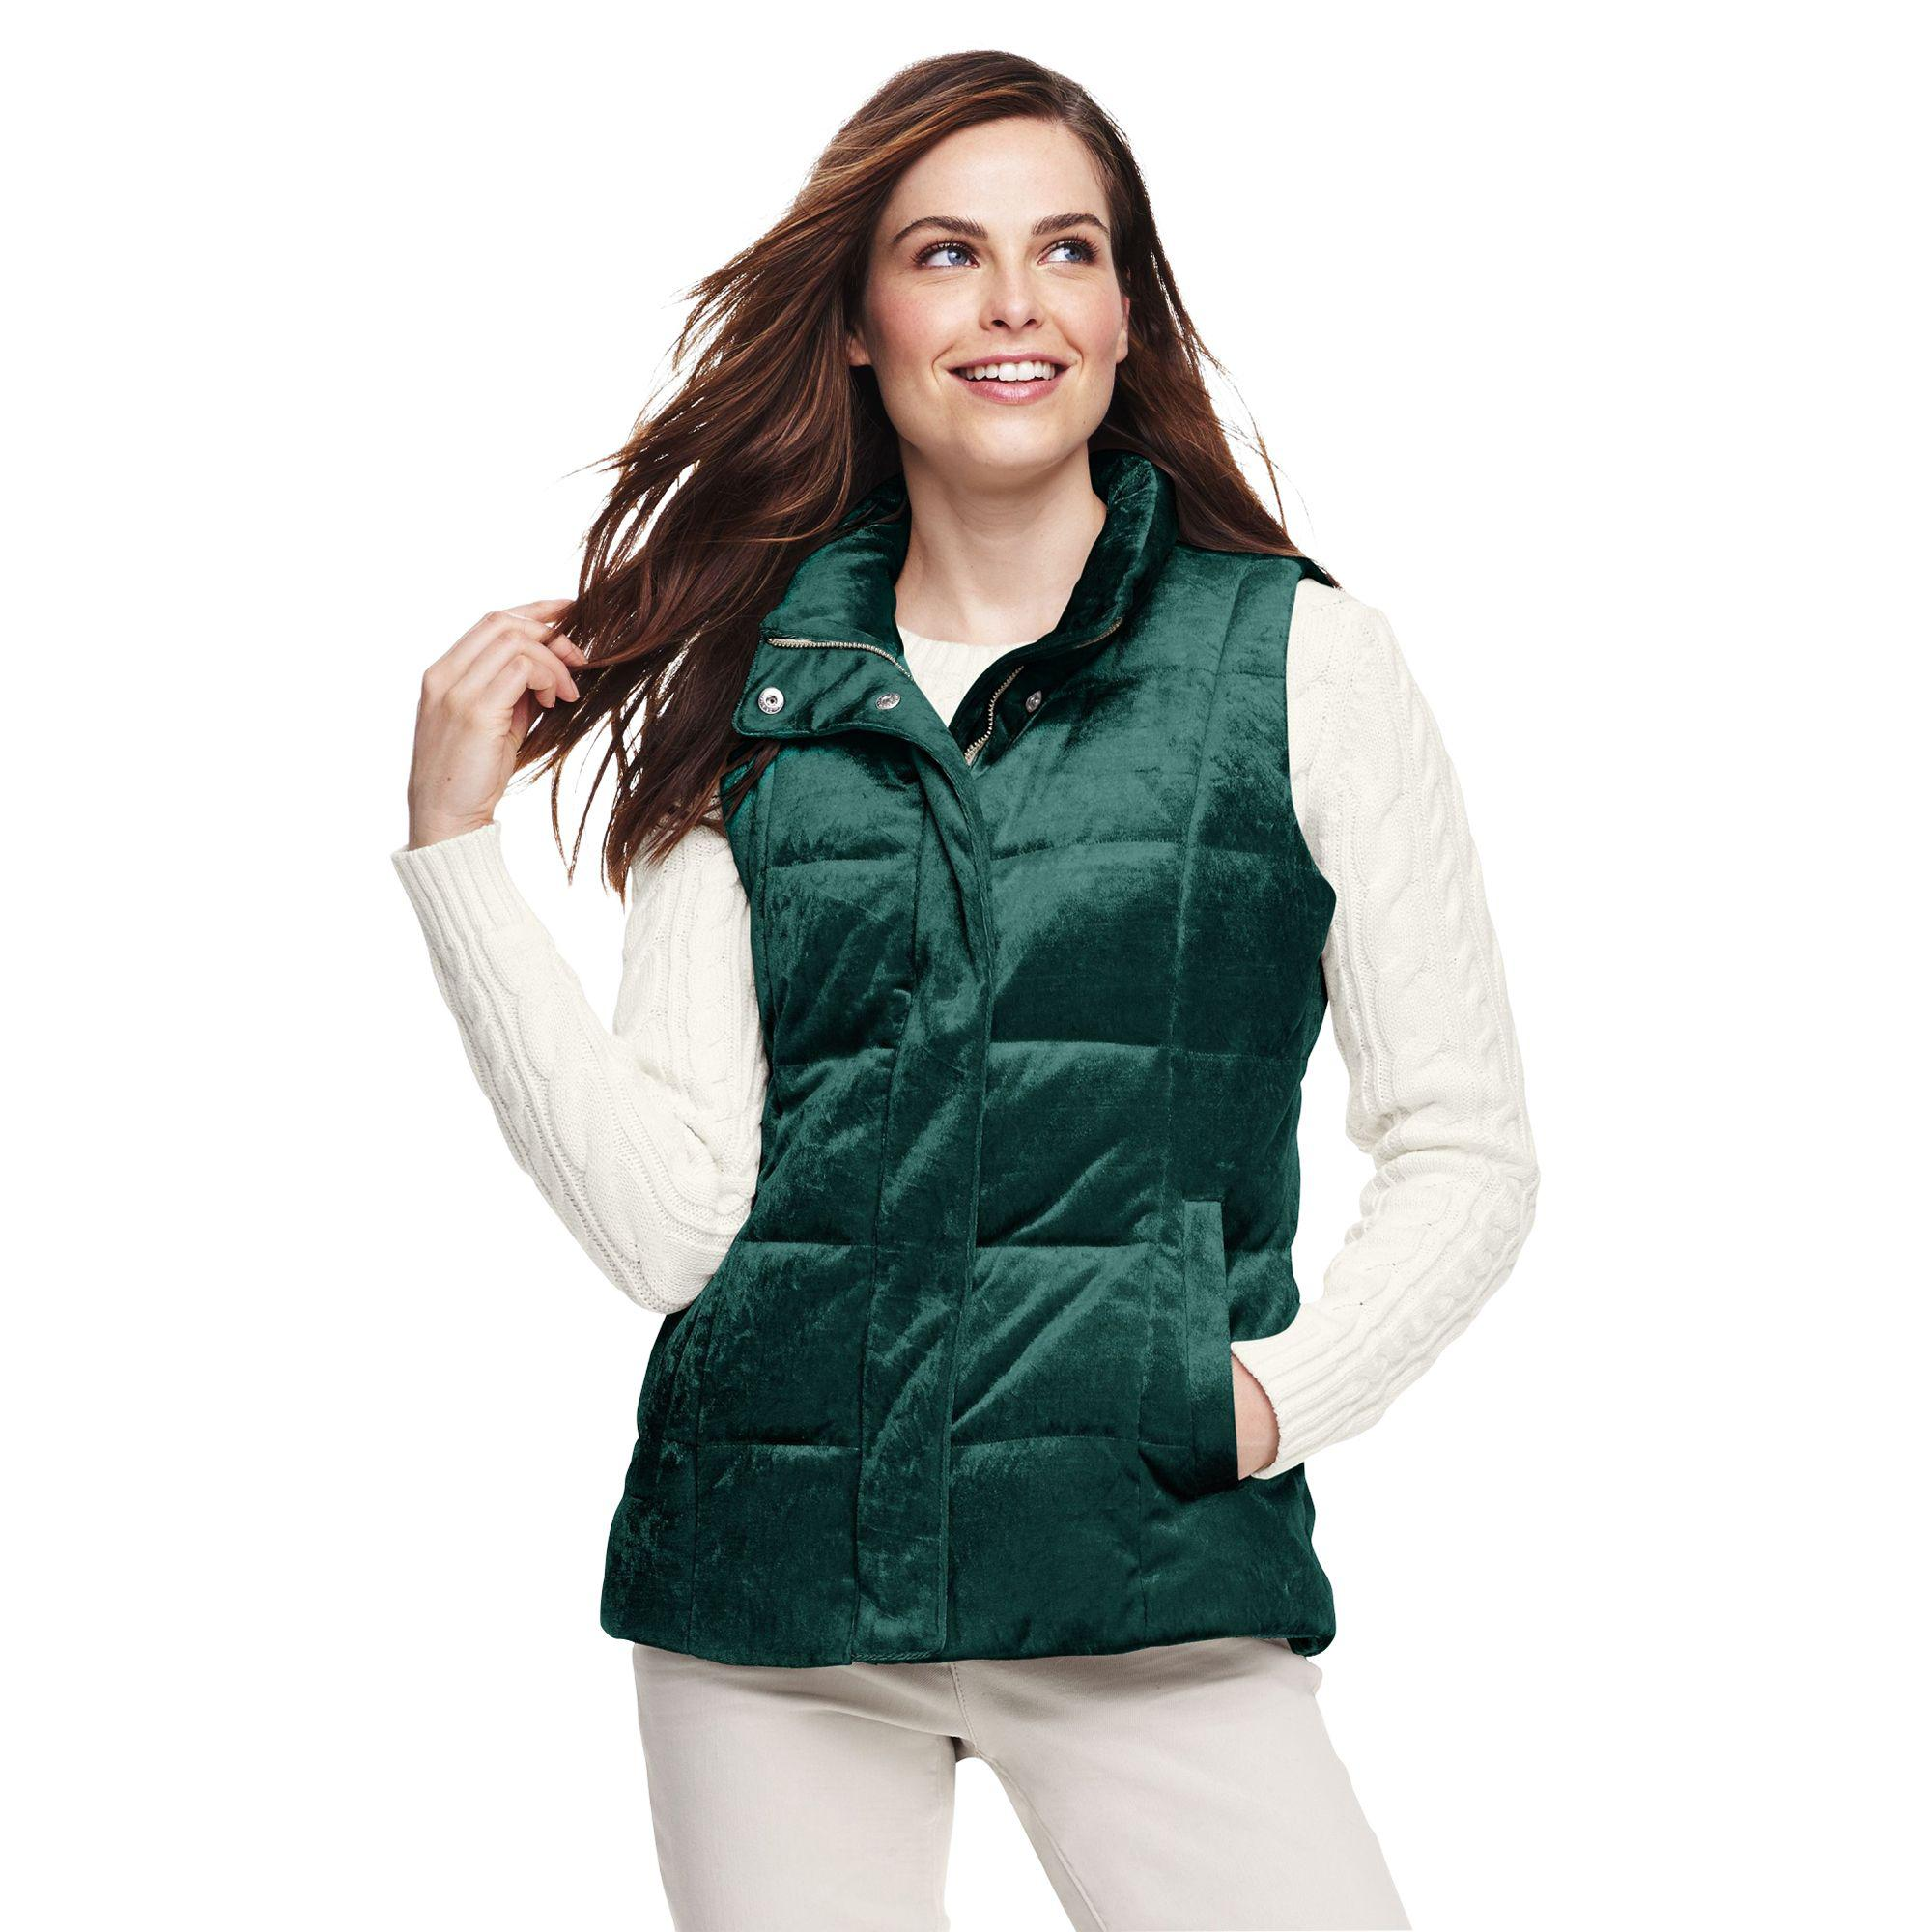 d4350375bed8 Lands' End Green Petite Velour Gilet in Green - Lyst